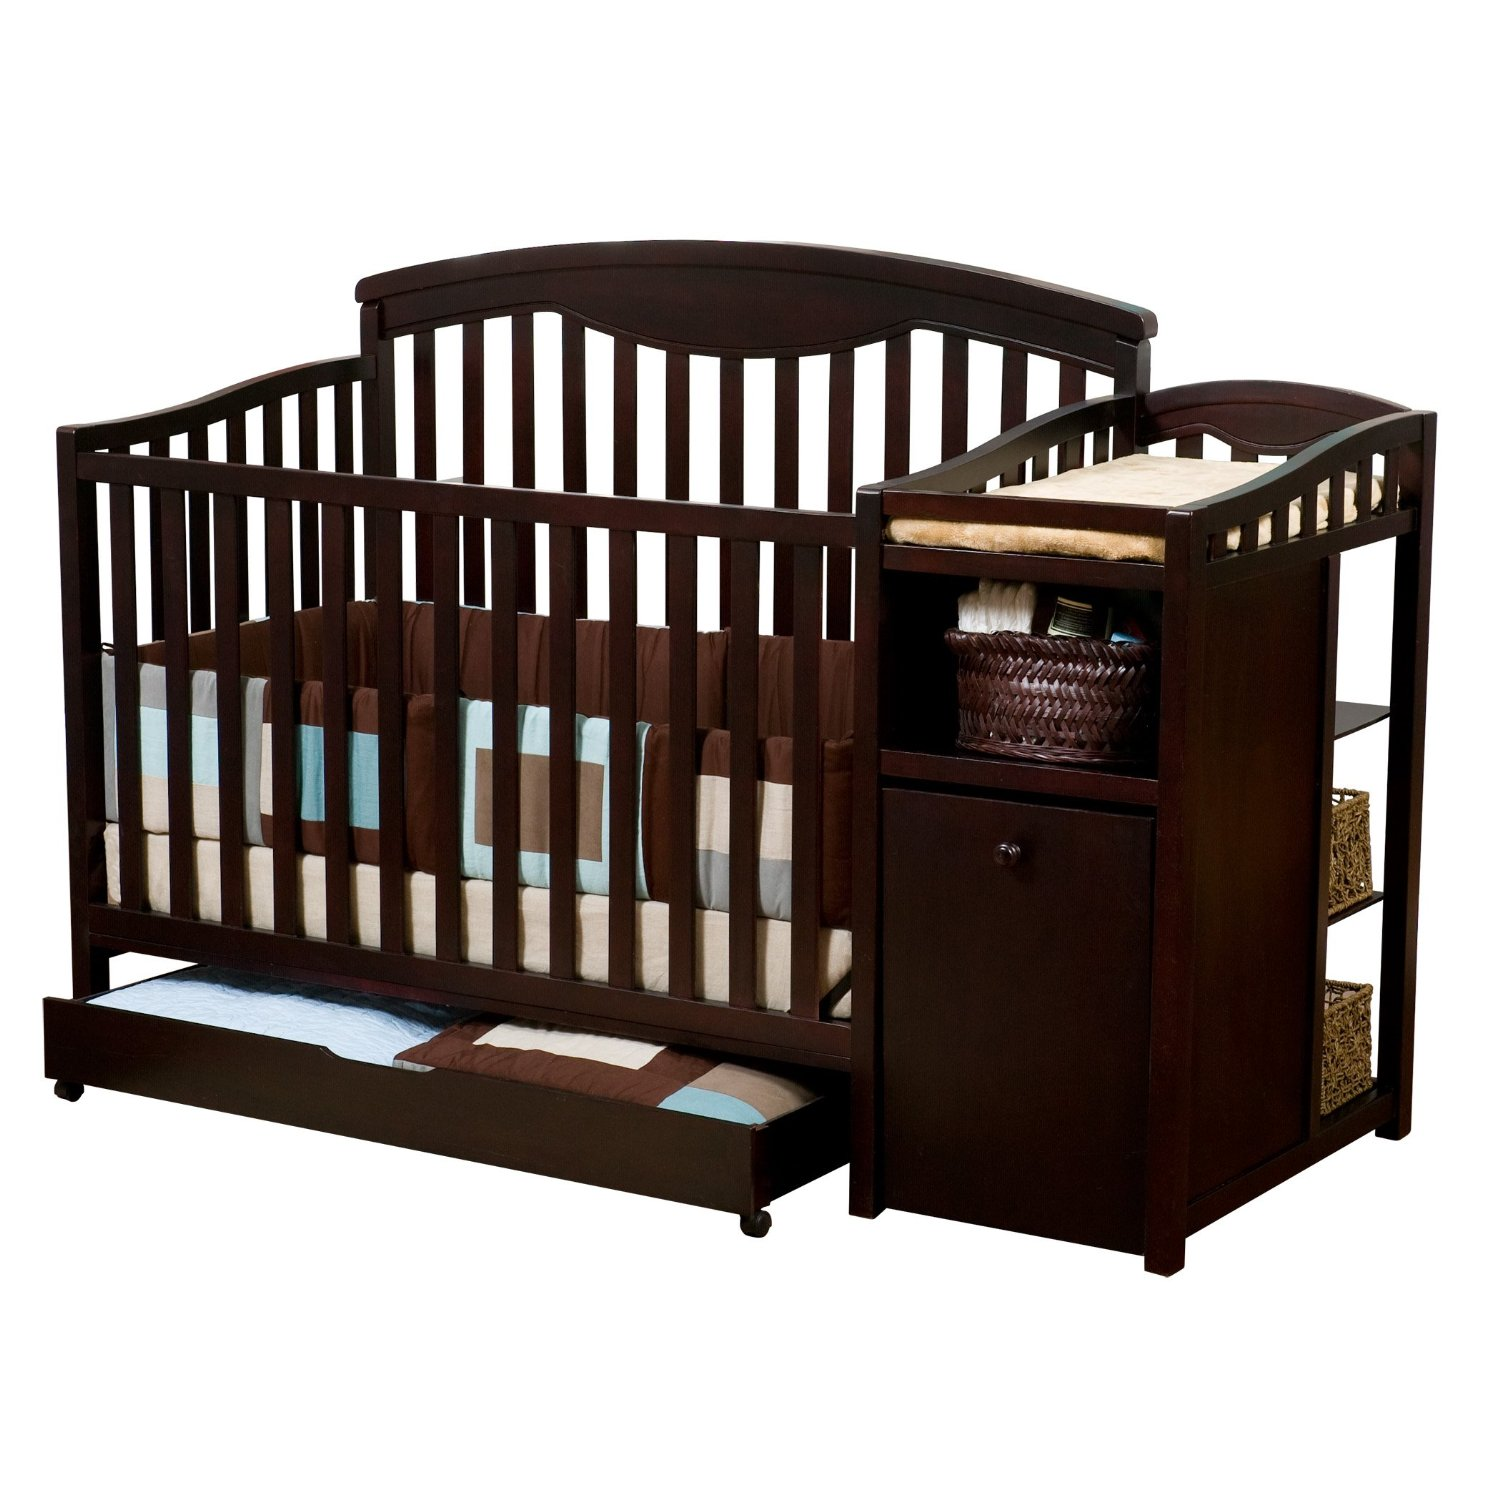 Crib for babies philippines - Convertible Is Possible